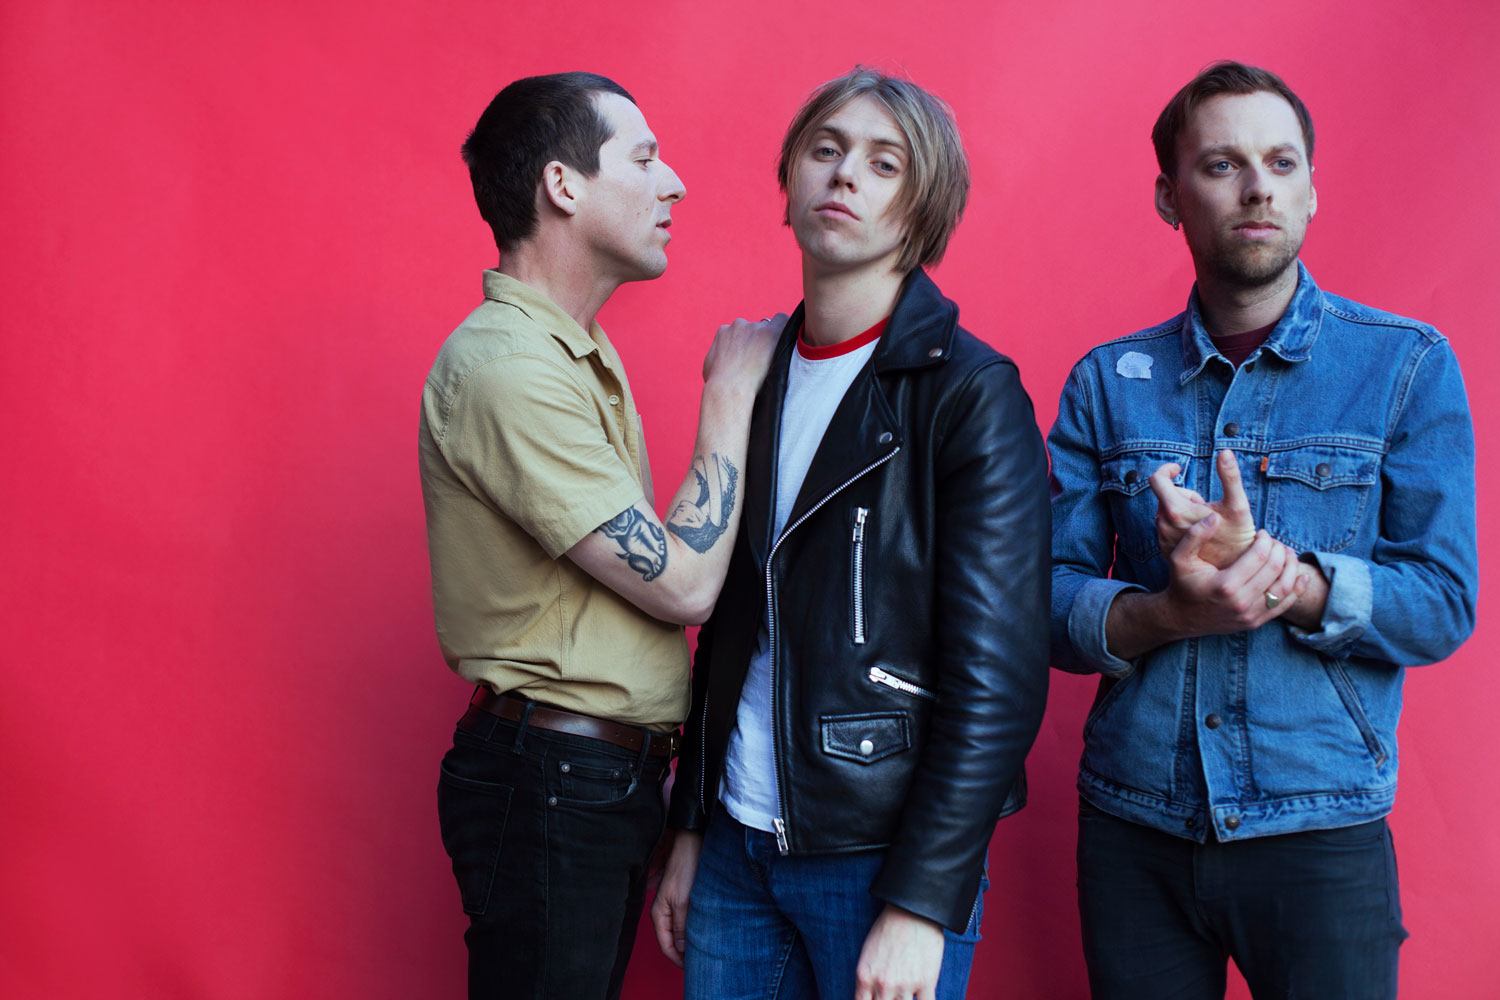 THE XCERTS : un nouvel opus bourré d'optimisme et de romantisme !5 min de lecture